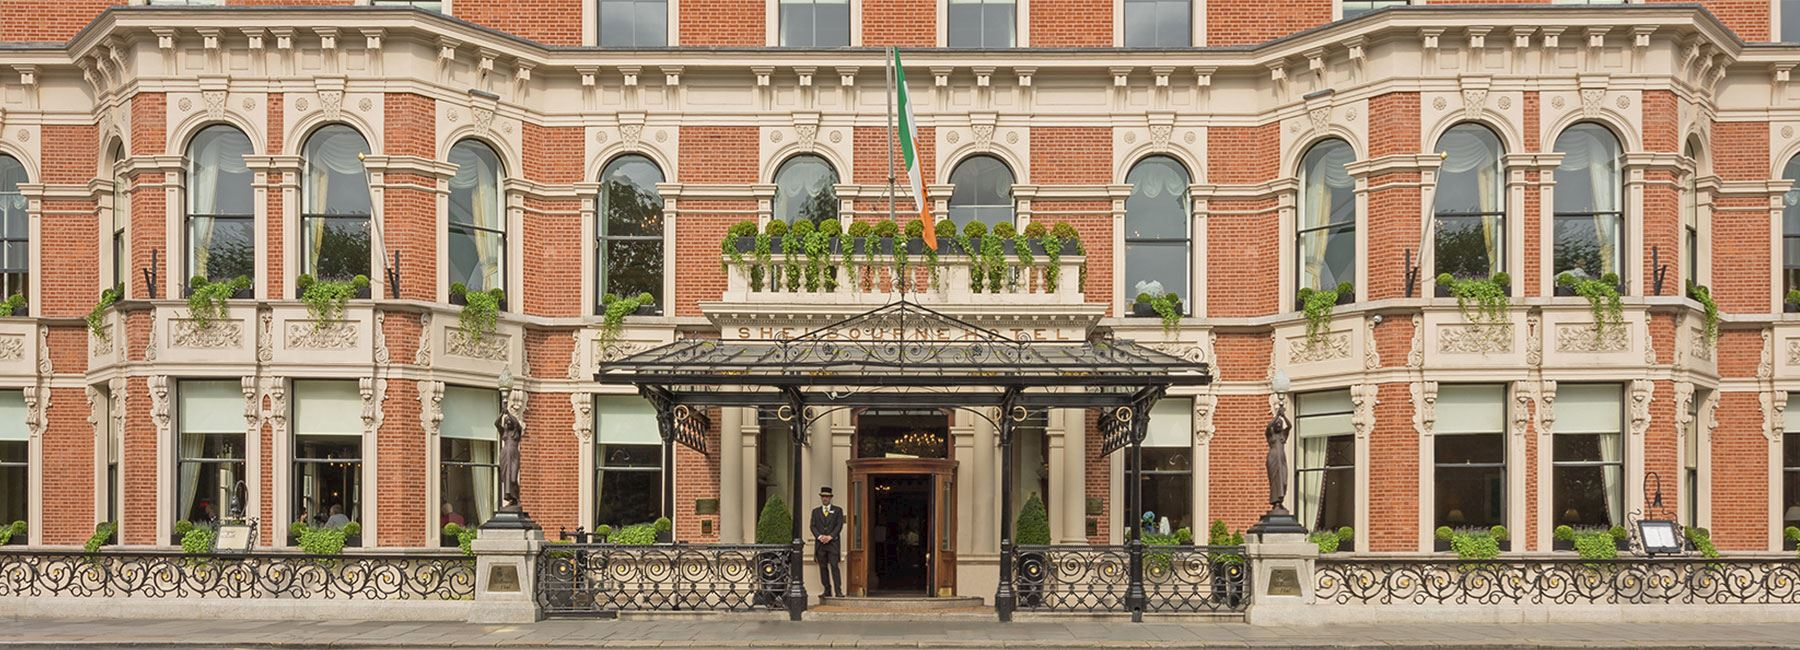 The Shelbourne Vouchers, Dublin